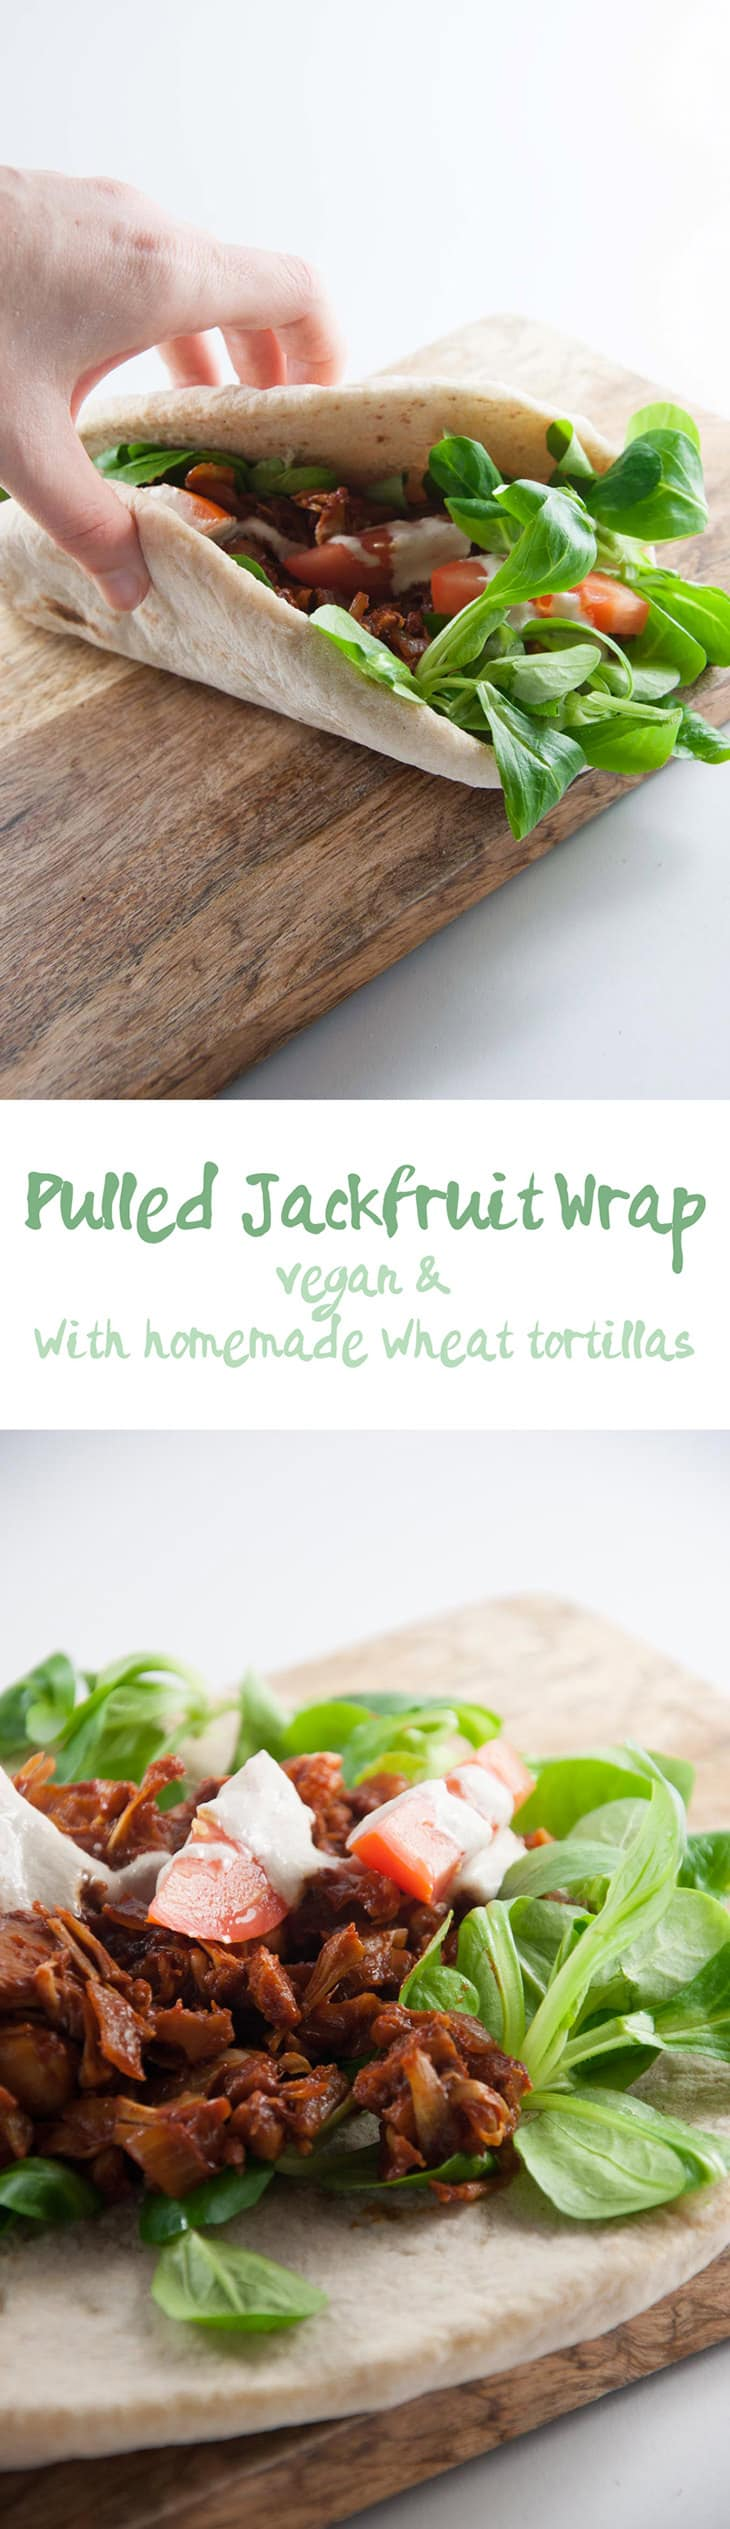 Pulled Jackfruit Wrap in thick, fluffy tortillas | ElephantasticVegan.com #vegan #jackfruit #pulled #wrap #dinner #lunch